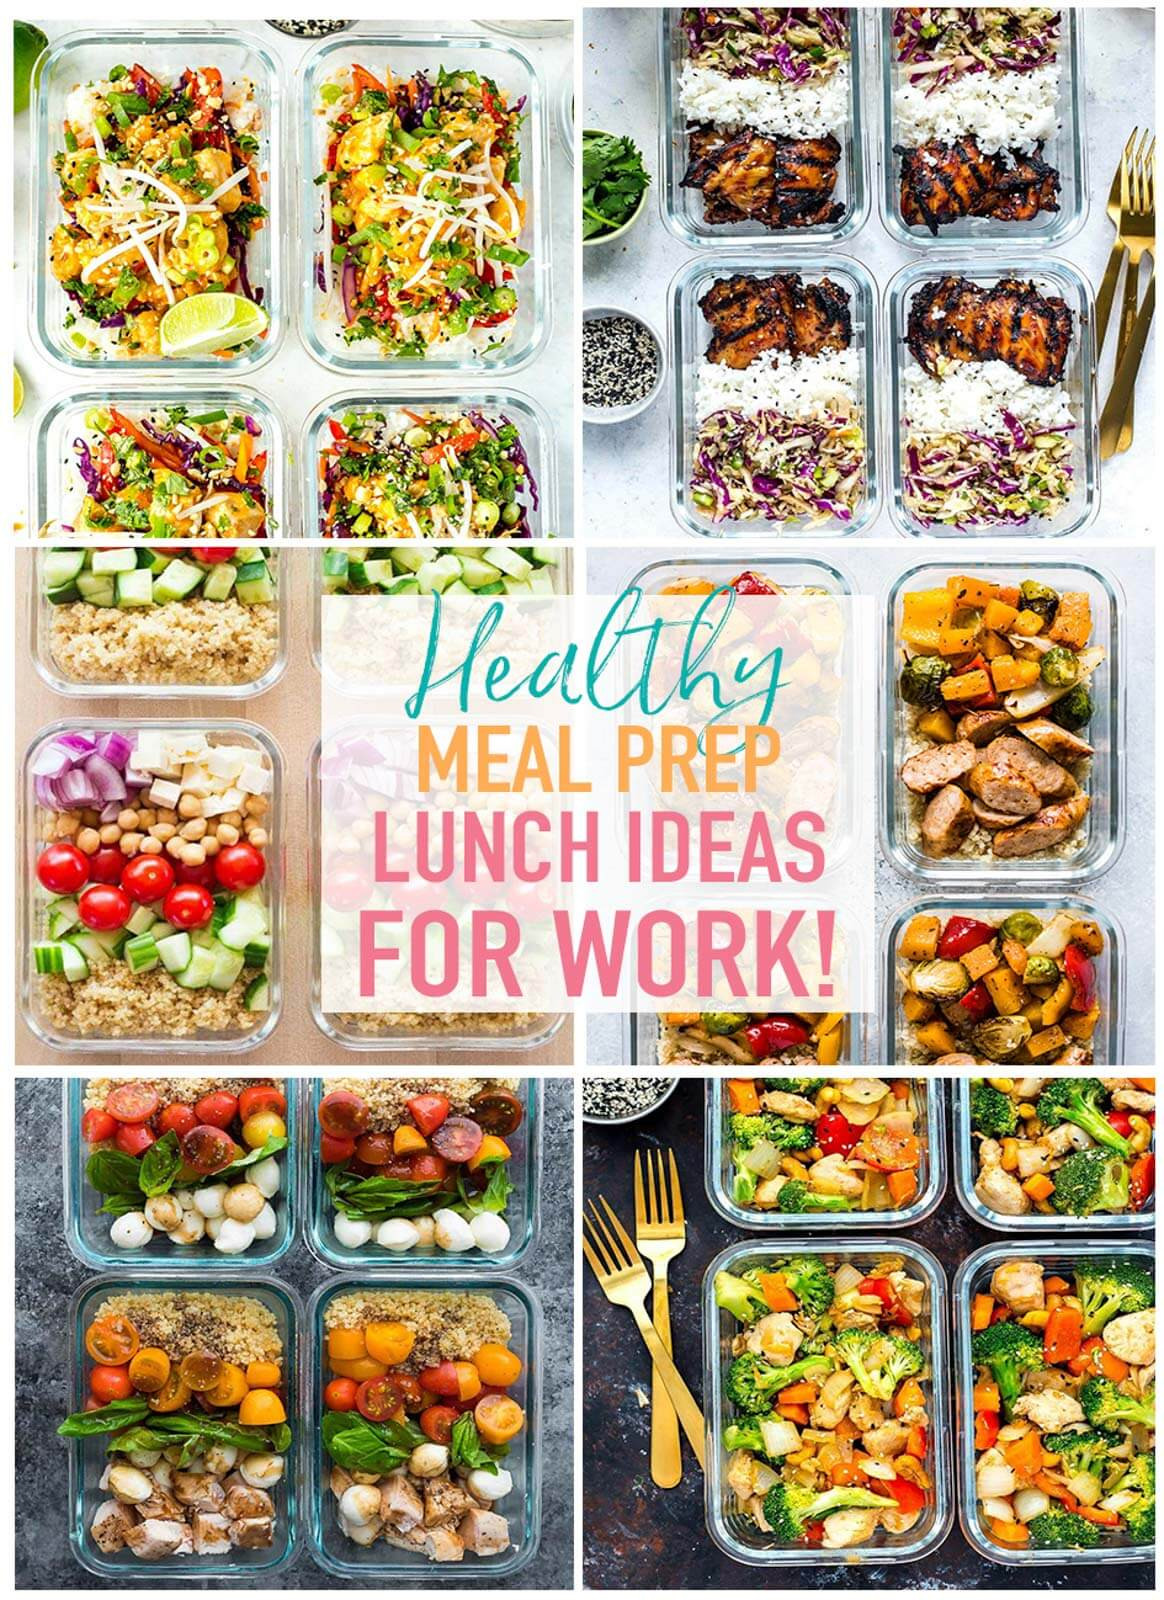 Healthy Food Ideas For Dinner  20 Easy Healthy Meal Prep Lunch Ideas for Work The Girl